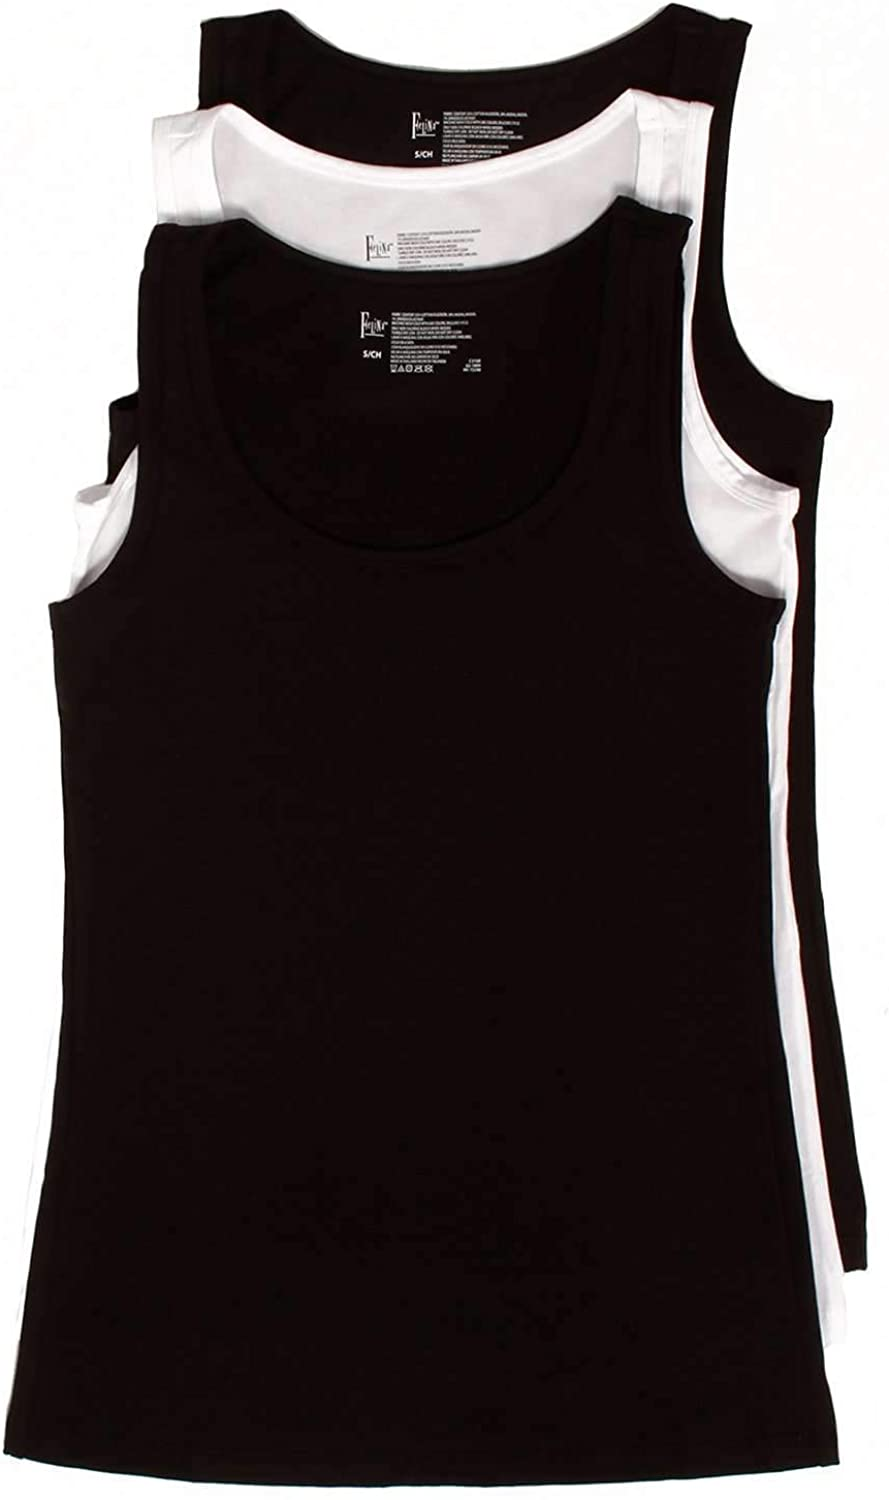 Cotton Stretch Layering Tank Top 3Pack